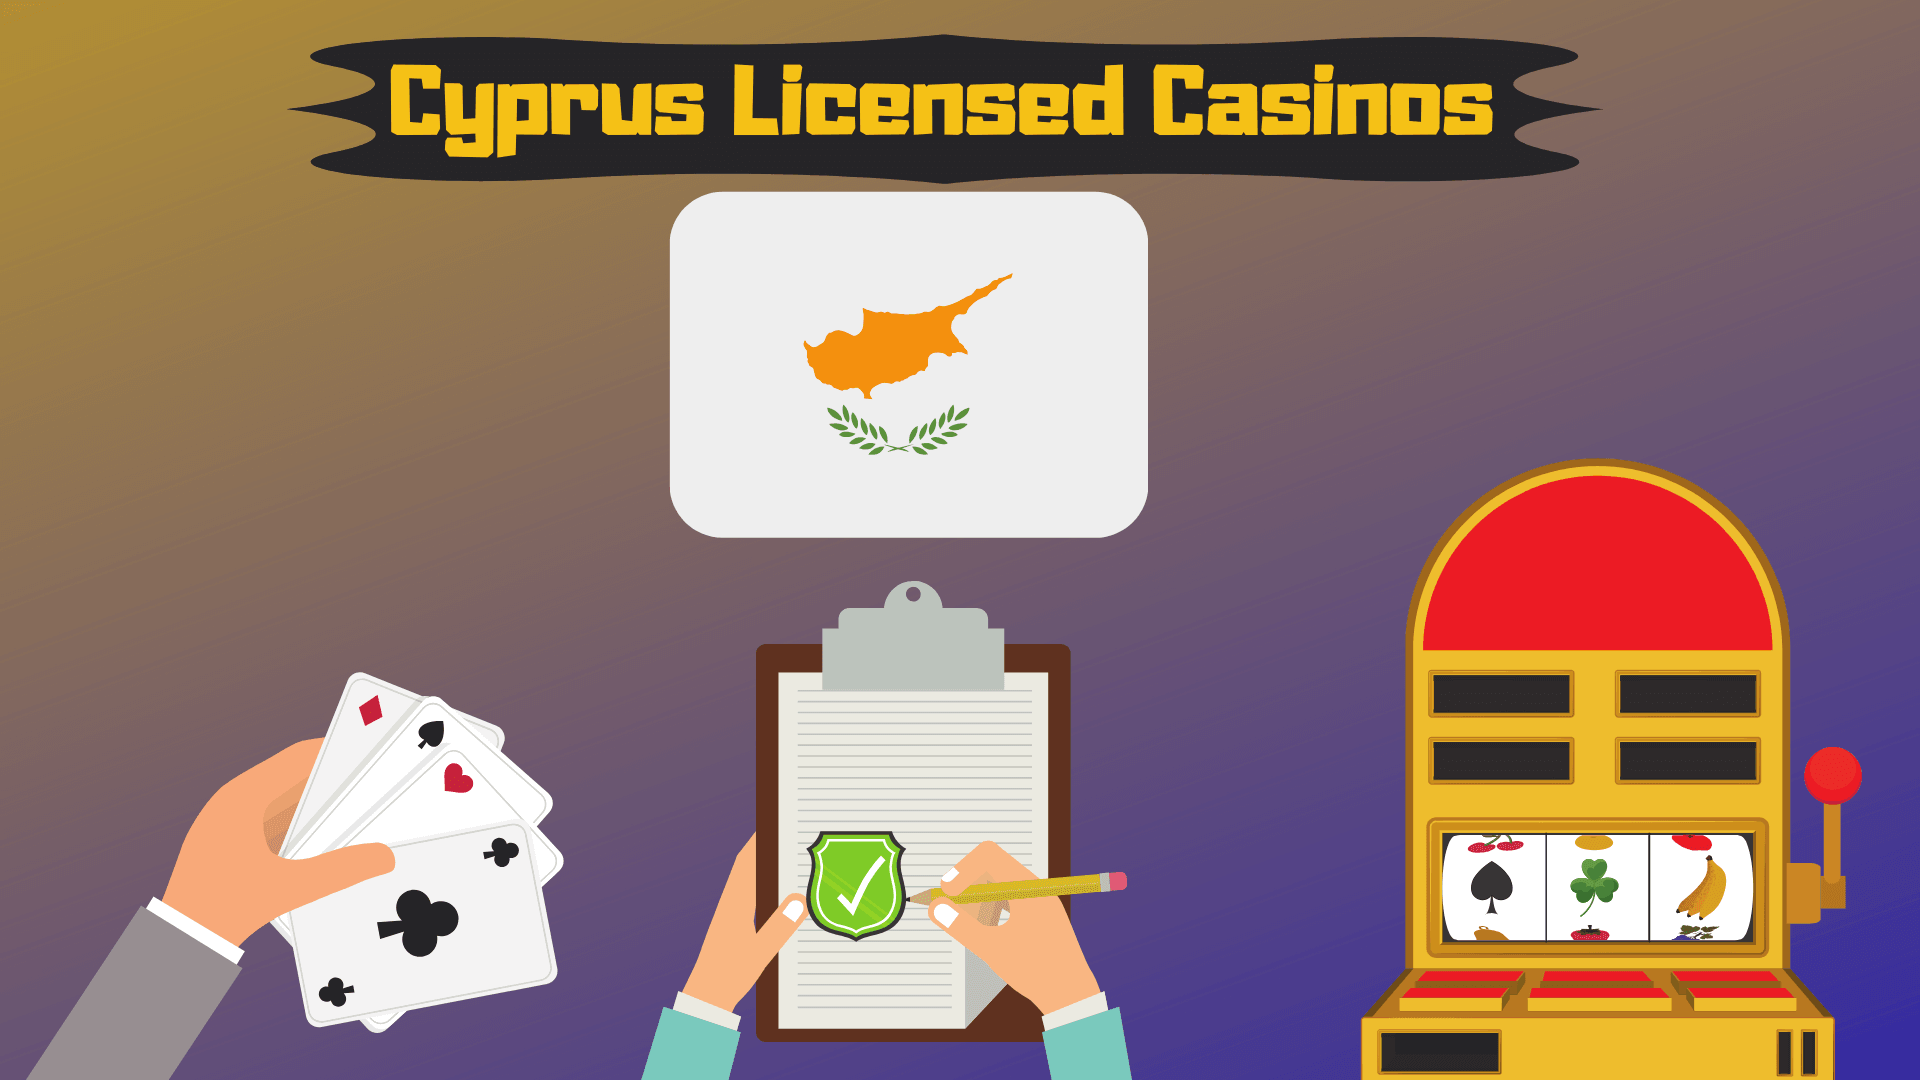 Cyprus Licensed Casinos